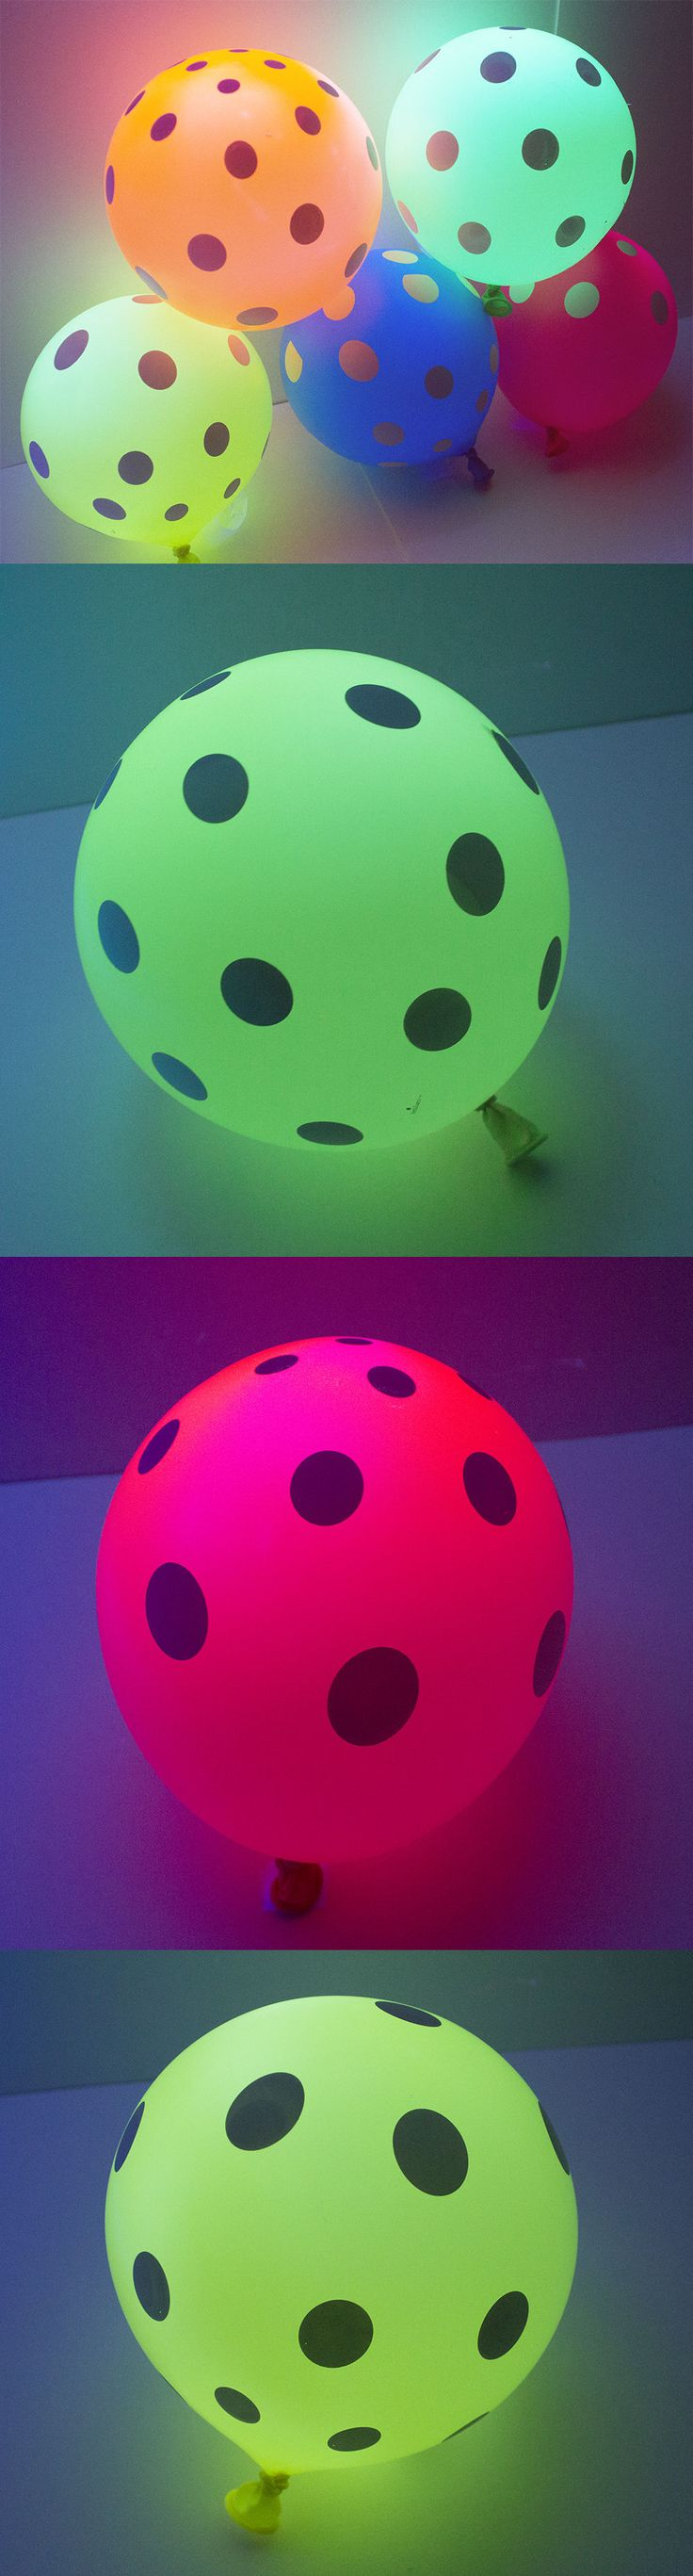 Other Kids and Teens Items 176989: Neon Black Light Uv Active Balloons Polka Dot 100Pc Assorted Colors Latex Helium -> BUY IT NOW ONLY: $38 on eBay!